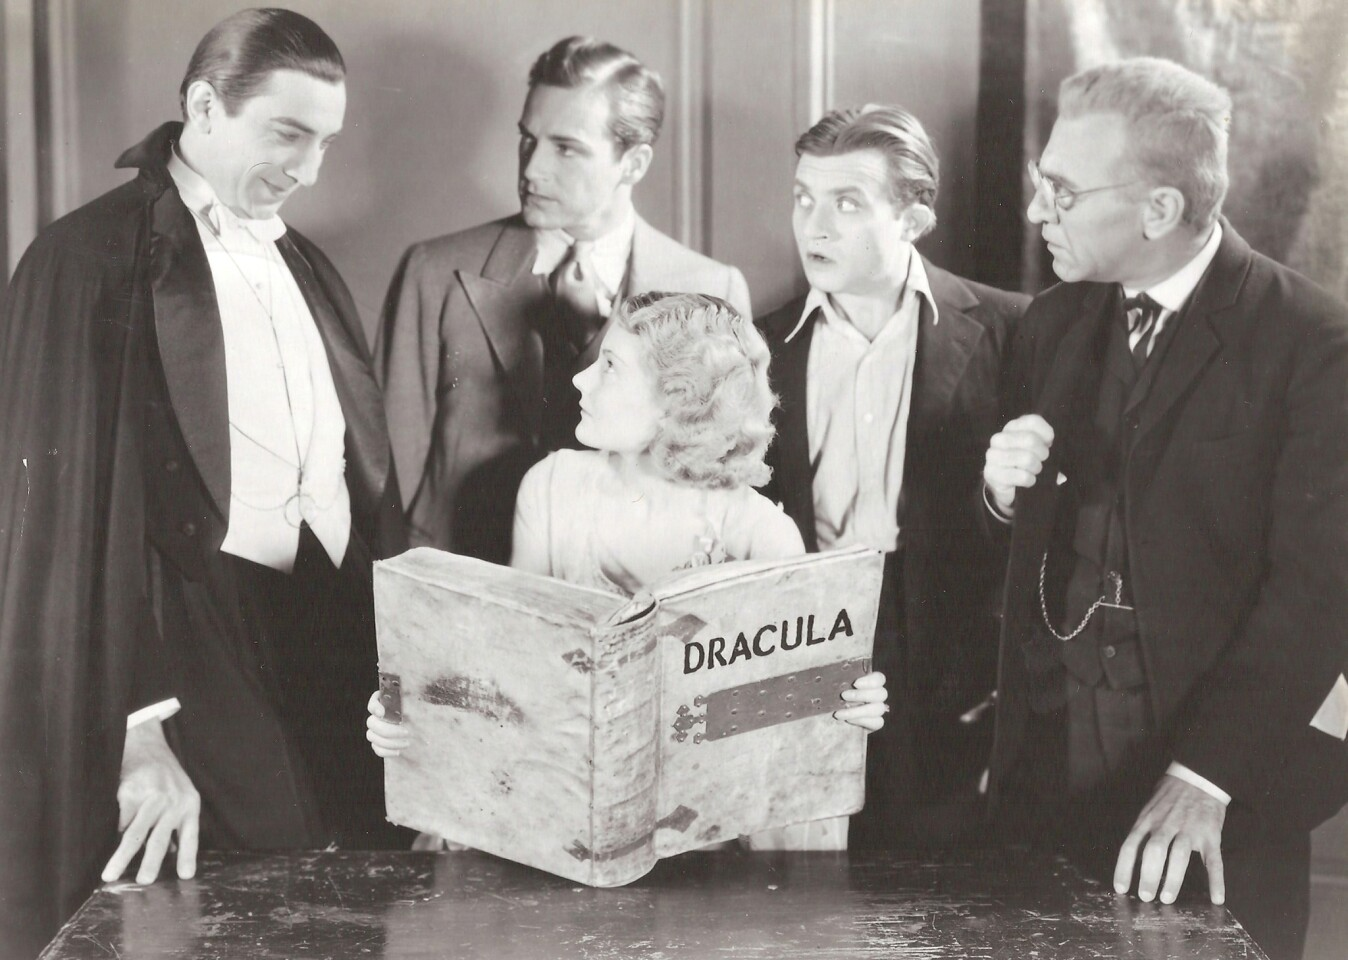 """Bela Lugosi, David Manners, Helen Chandler, Dwight Frye and Edward Van Sloan in """"Dracula."""" Boris Karloff, Bela Lugosi, Lon Chaney and Lon Chaney Jr. are among the iconic figures of the Universal horror films of the 1920s-1940s. But these films were also filled with a stock company of character actors -- Oscar-nominated stage actors, ingenues and even a tiny Russian actress, who was taught her craft by Stanislavsky -- who helped bring these classic films to terrifying life. With the release of """"Universal Classic Monsters: The Essential Collection"""" on Blu-ray and the Academy of Motion Picture Arts and Sciences' """"Universal's Legacy of Horror"""" film series this month, it seemed the right time to pay tribute to these often unsung heroes of the genre. Full story: Universal horror: 'Essential' Blu-ray spotlights classic actors"""